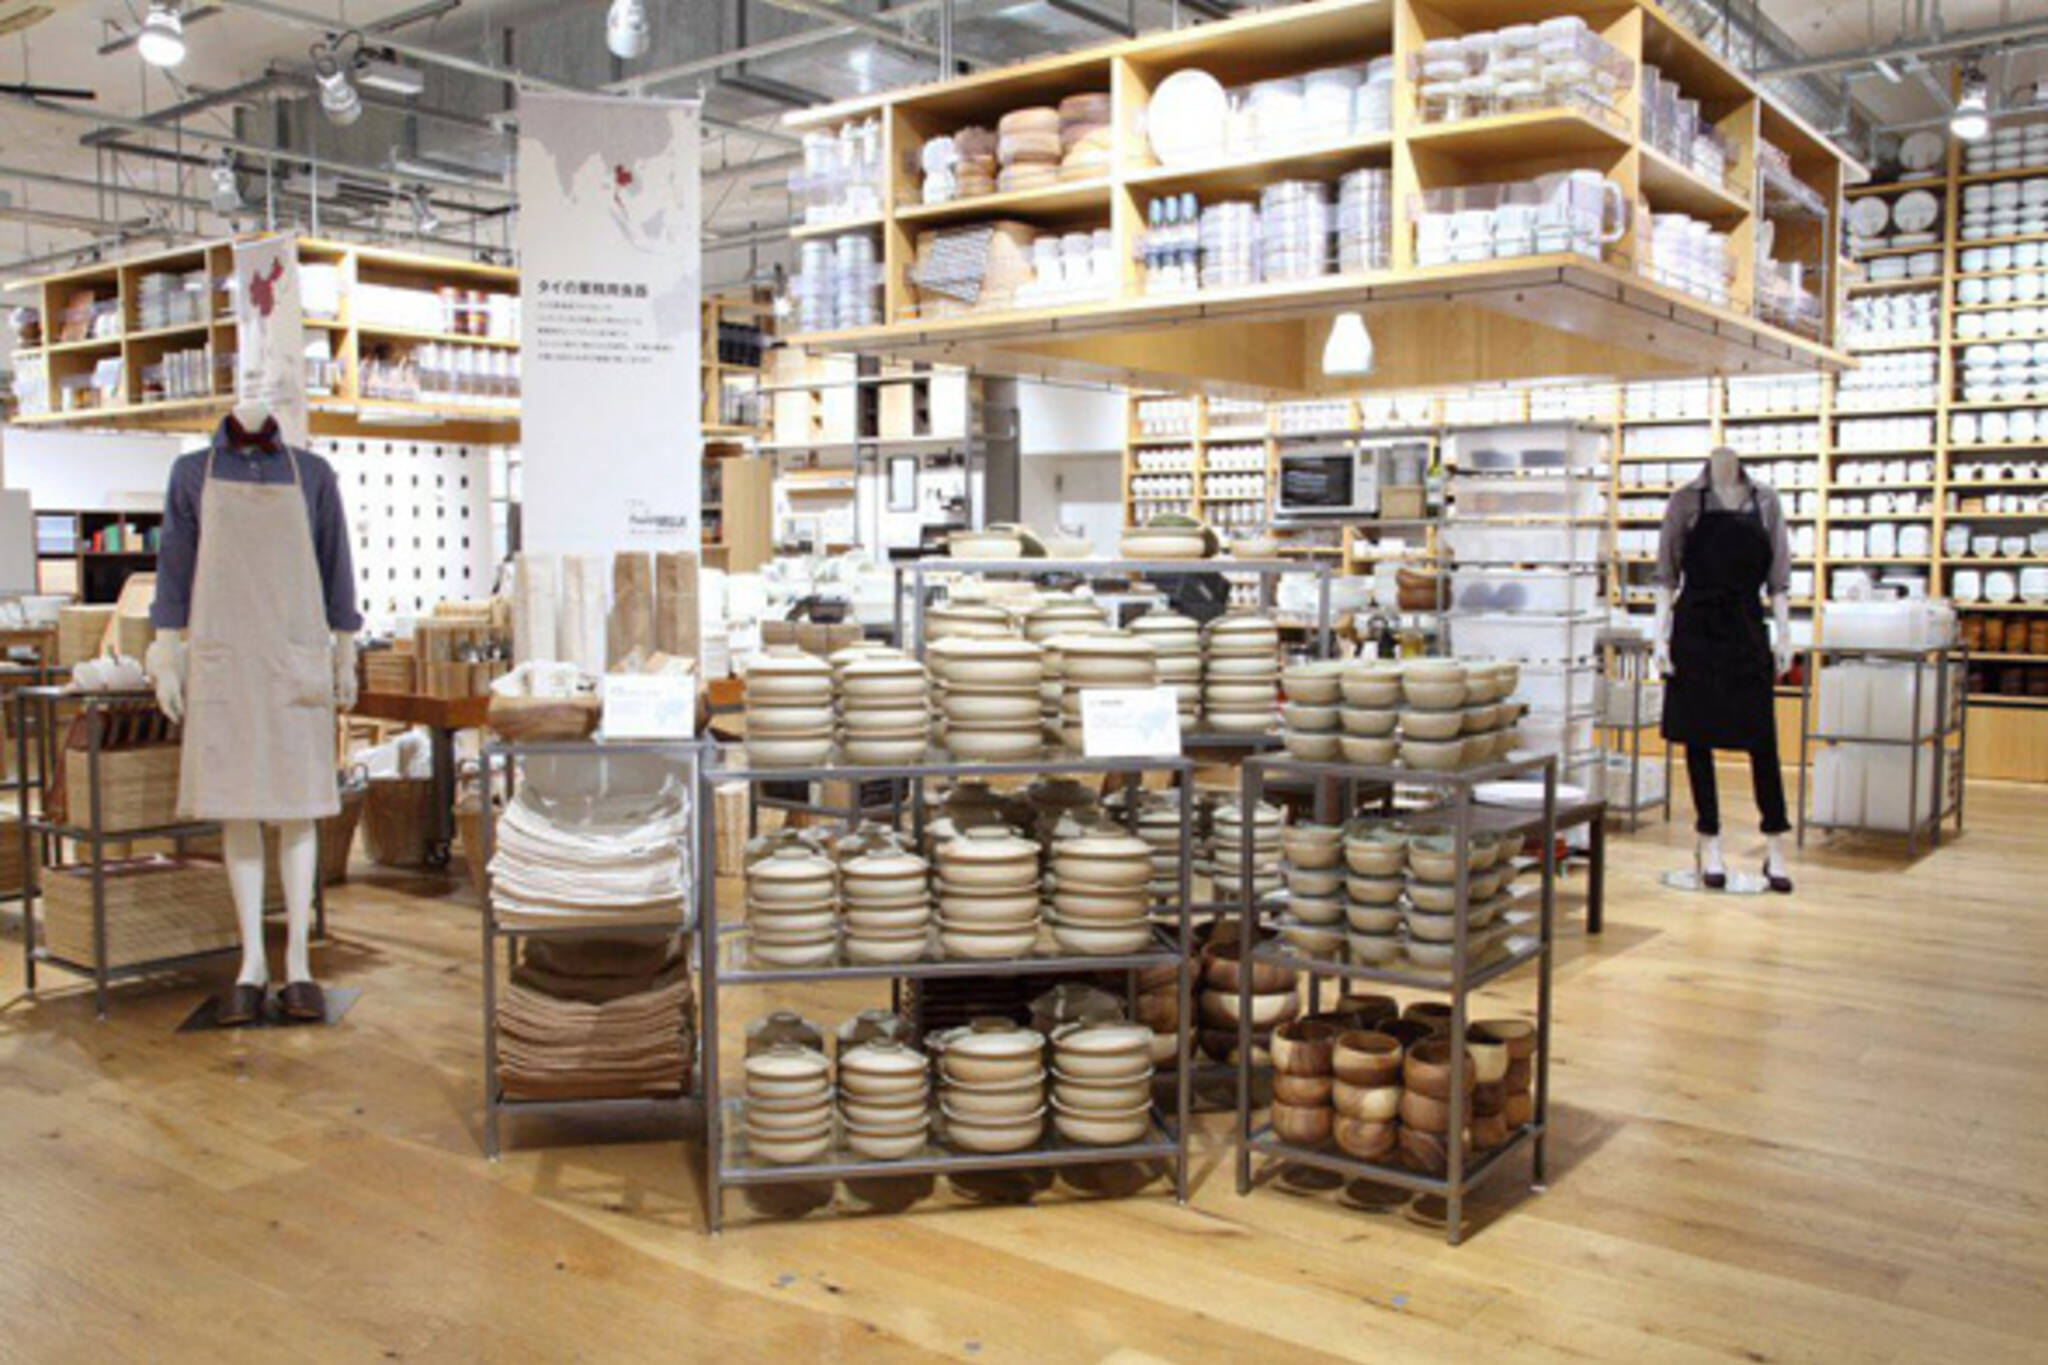 Do you know MUJI?? It's a Japanese retail company, which has over 450 stores  in Japan, and has branches in 26 different countries across the world.